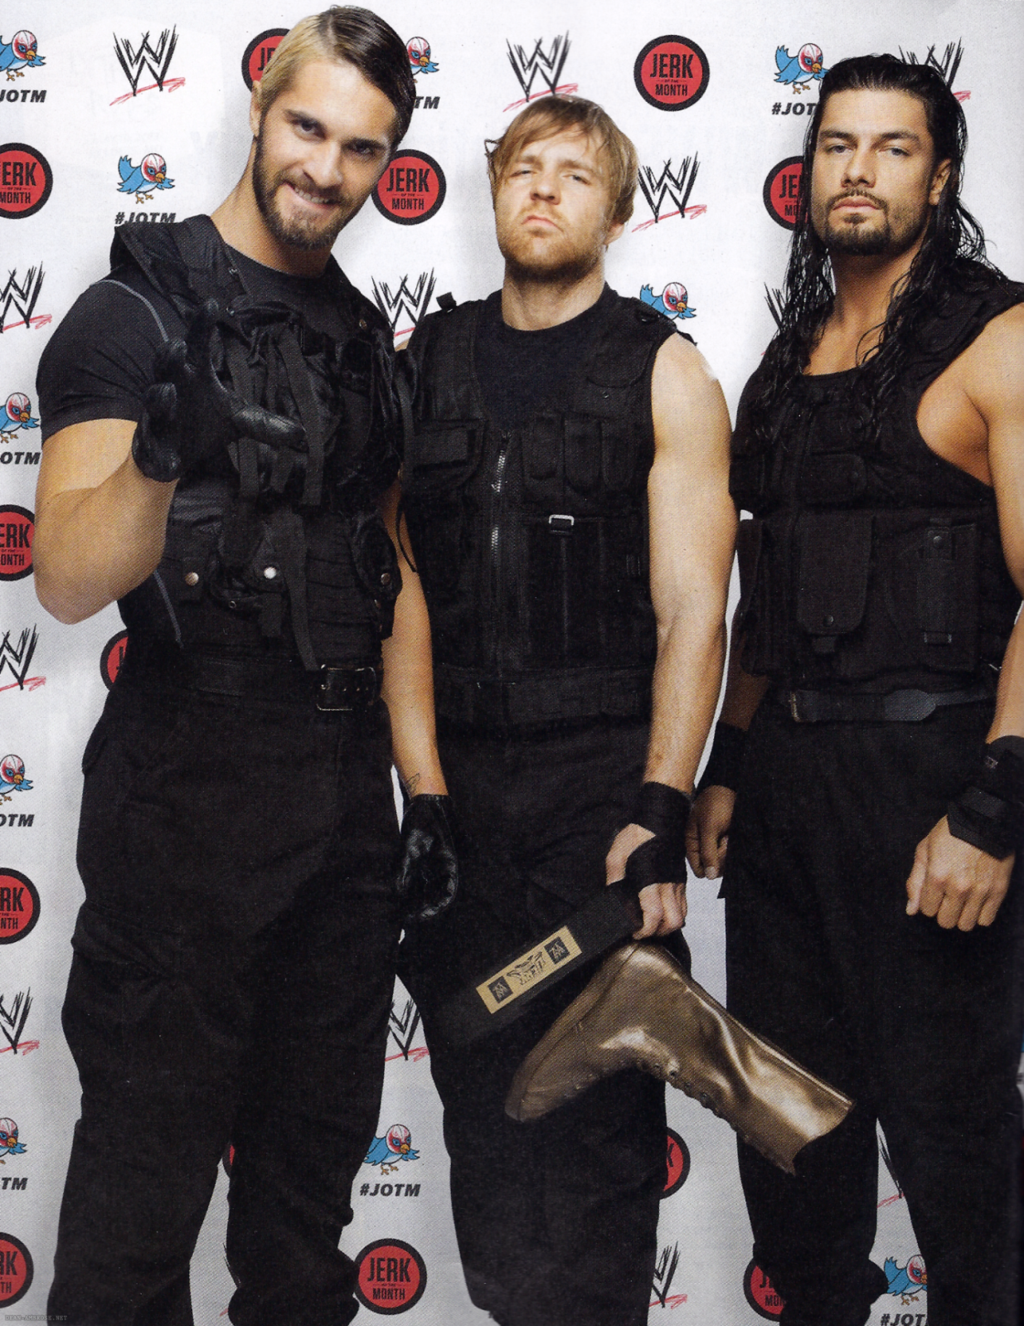 The Shield By Theelectrifyingonehd On Deviantart Shield The Shield Wwe Wwe Seth Rollins